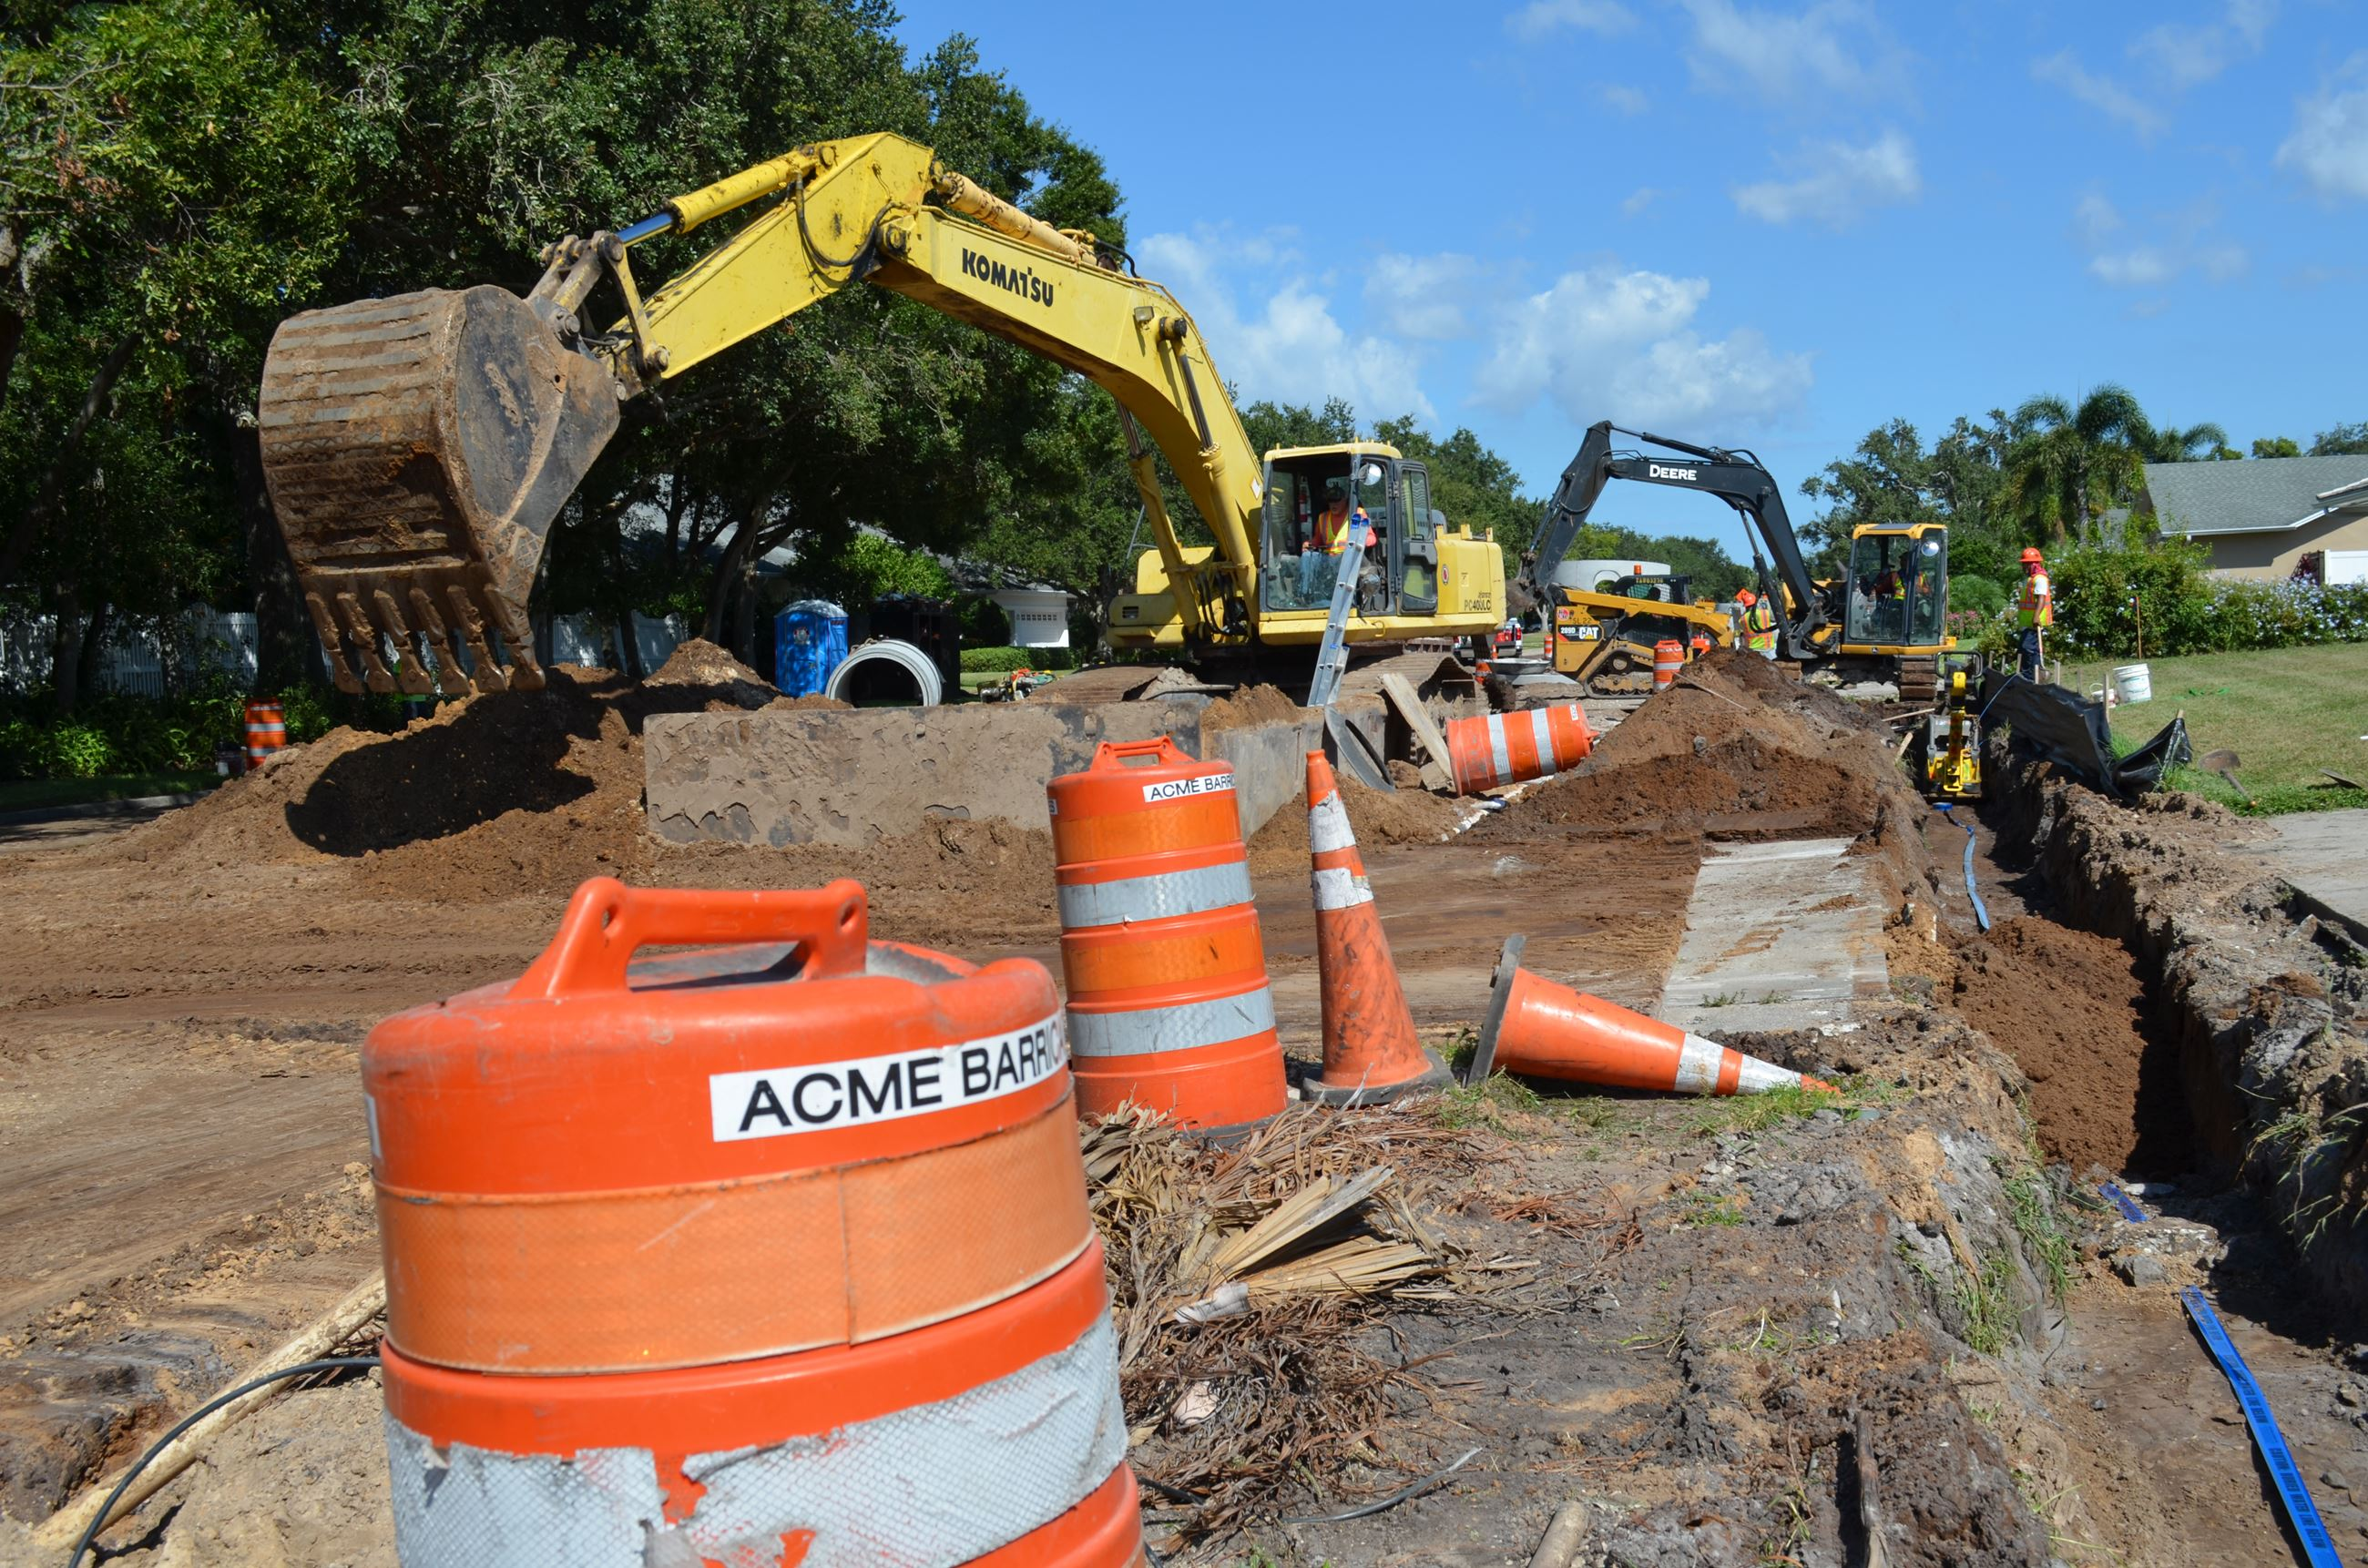 Two backhoes are being operated to place drainage pipes beneath Ponce de Leon Boulevard